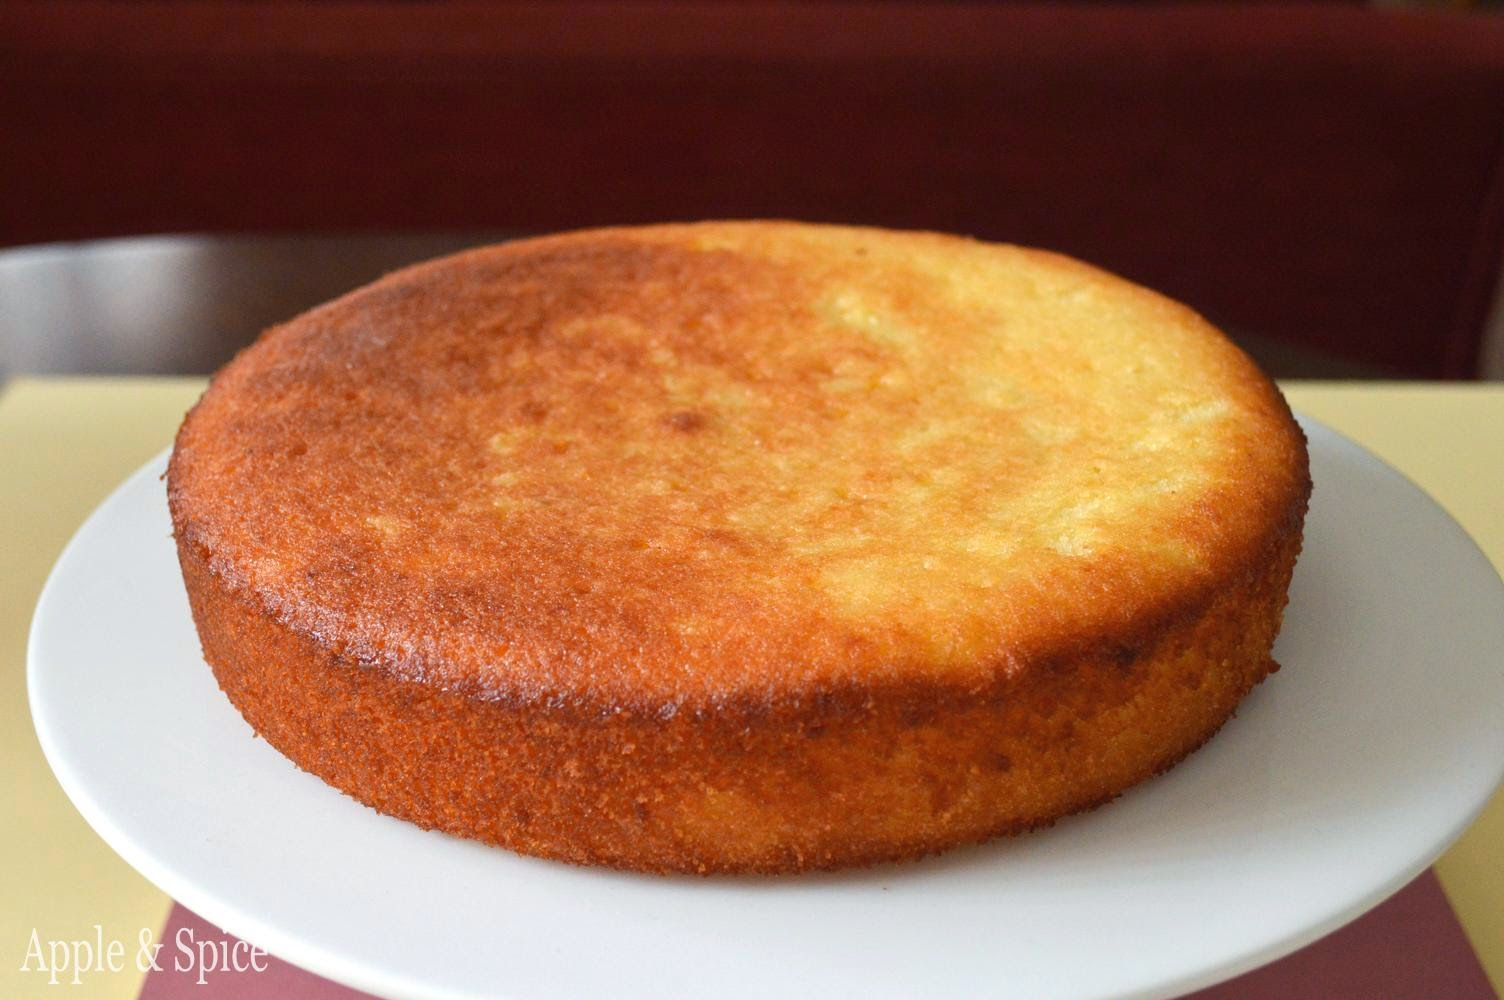 Apple & Spice: Lemon Drizzle Mashed Potato Cake